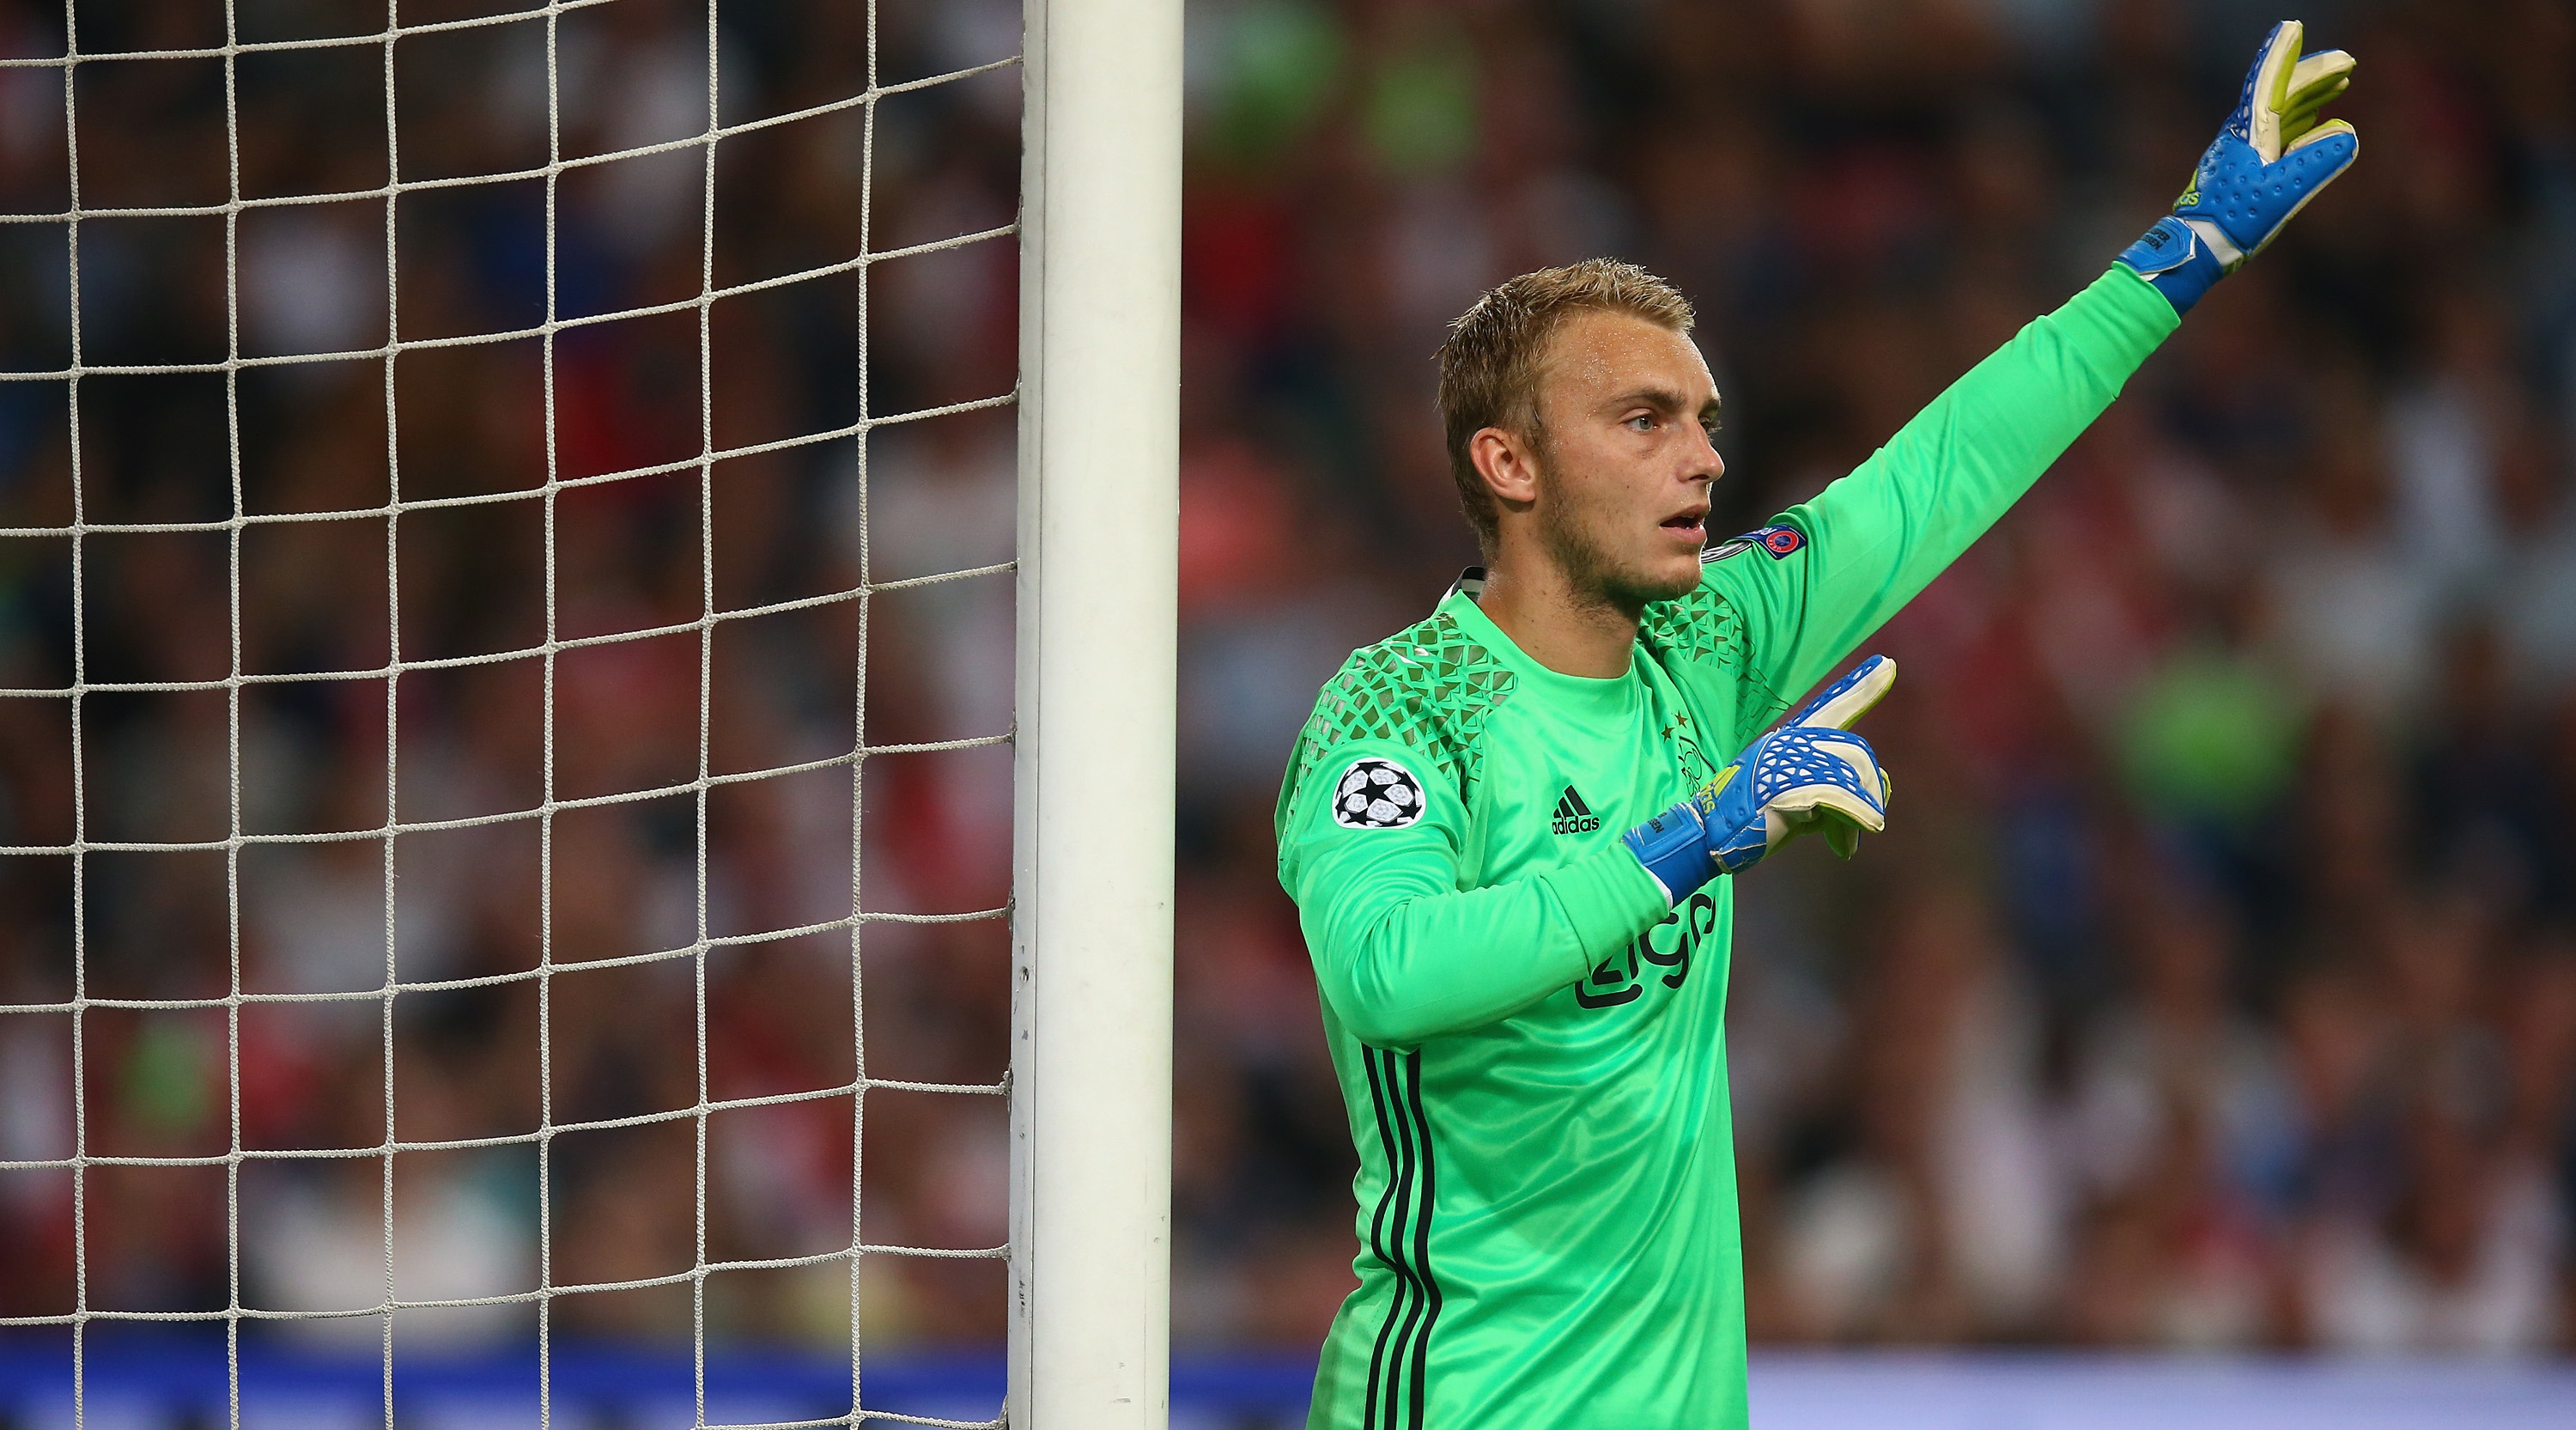 AMSTERDAM, NETHERLANDS - AUGUST 16: Goalkeeper Jasper Cillessen of Ajax in action during the UEFA Champions League Play-off 1st Leg match between Ajax and Rostov at Amsterdam Arena on August 16, 2016 in Amsterdam, Netherlands. (Photo by Christopher Lee/Getty Images)